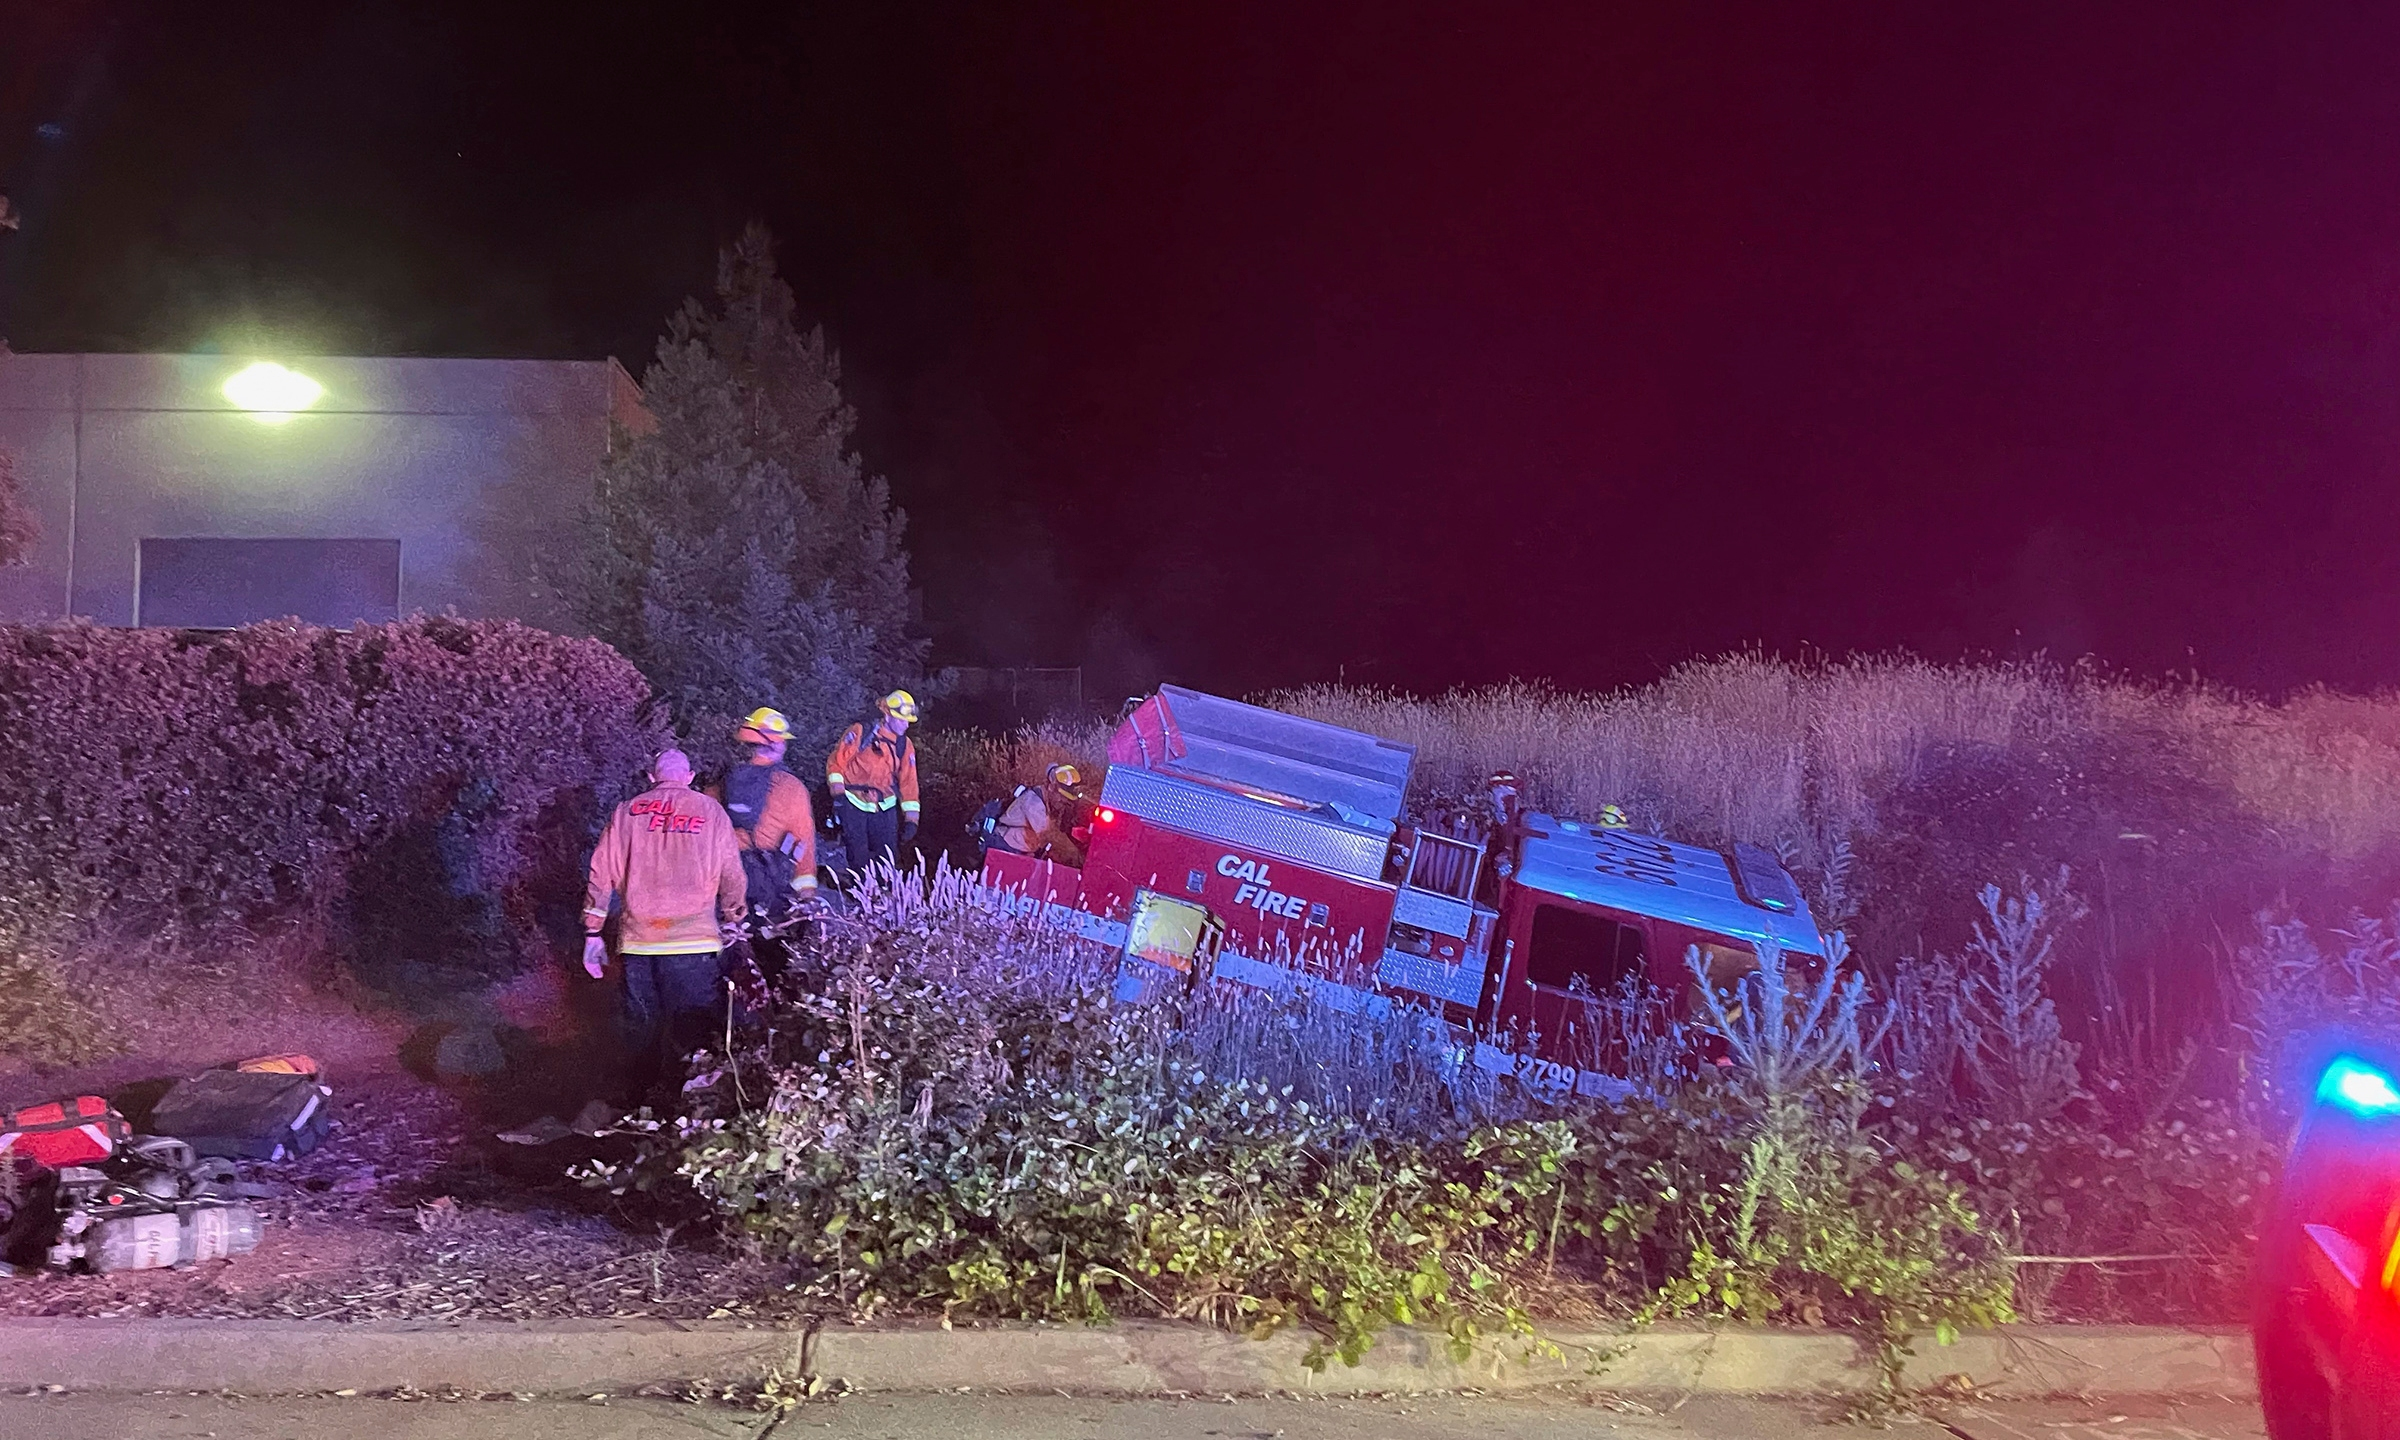 In this photo provided by Bill Wilde, firefighters look over a California Department of Forestry and Fire Protection truck that crashed into a ditch after it was stolen by a California inmate on July 4, 2021, in Shingle Springs, Calif. (Bill Wilde Photo via AP)